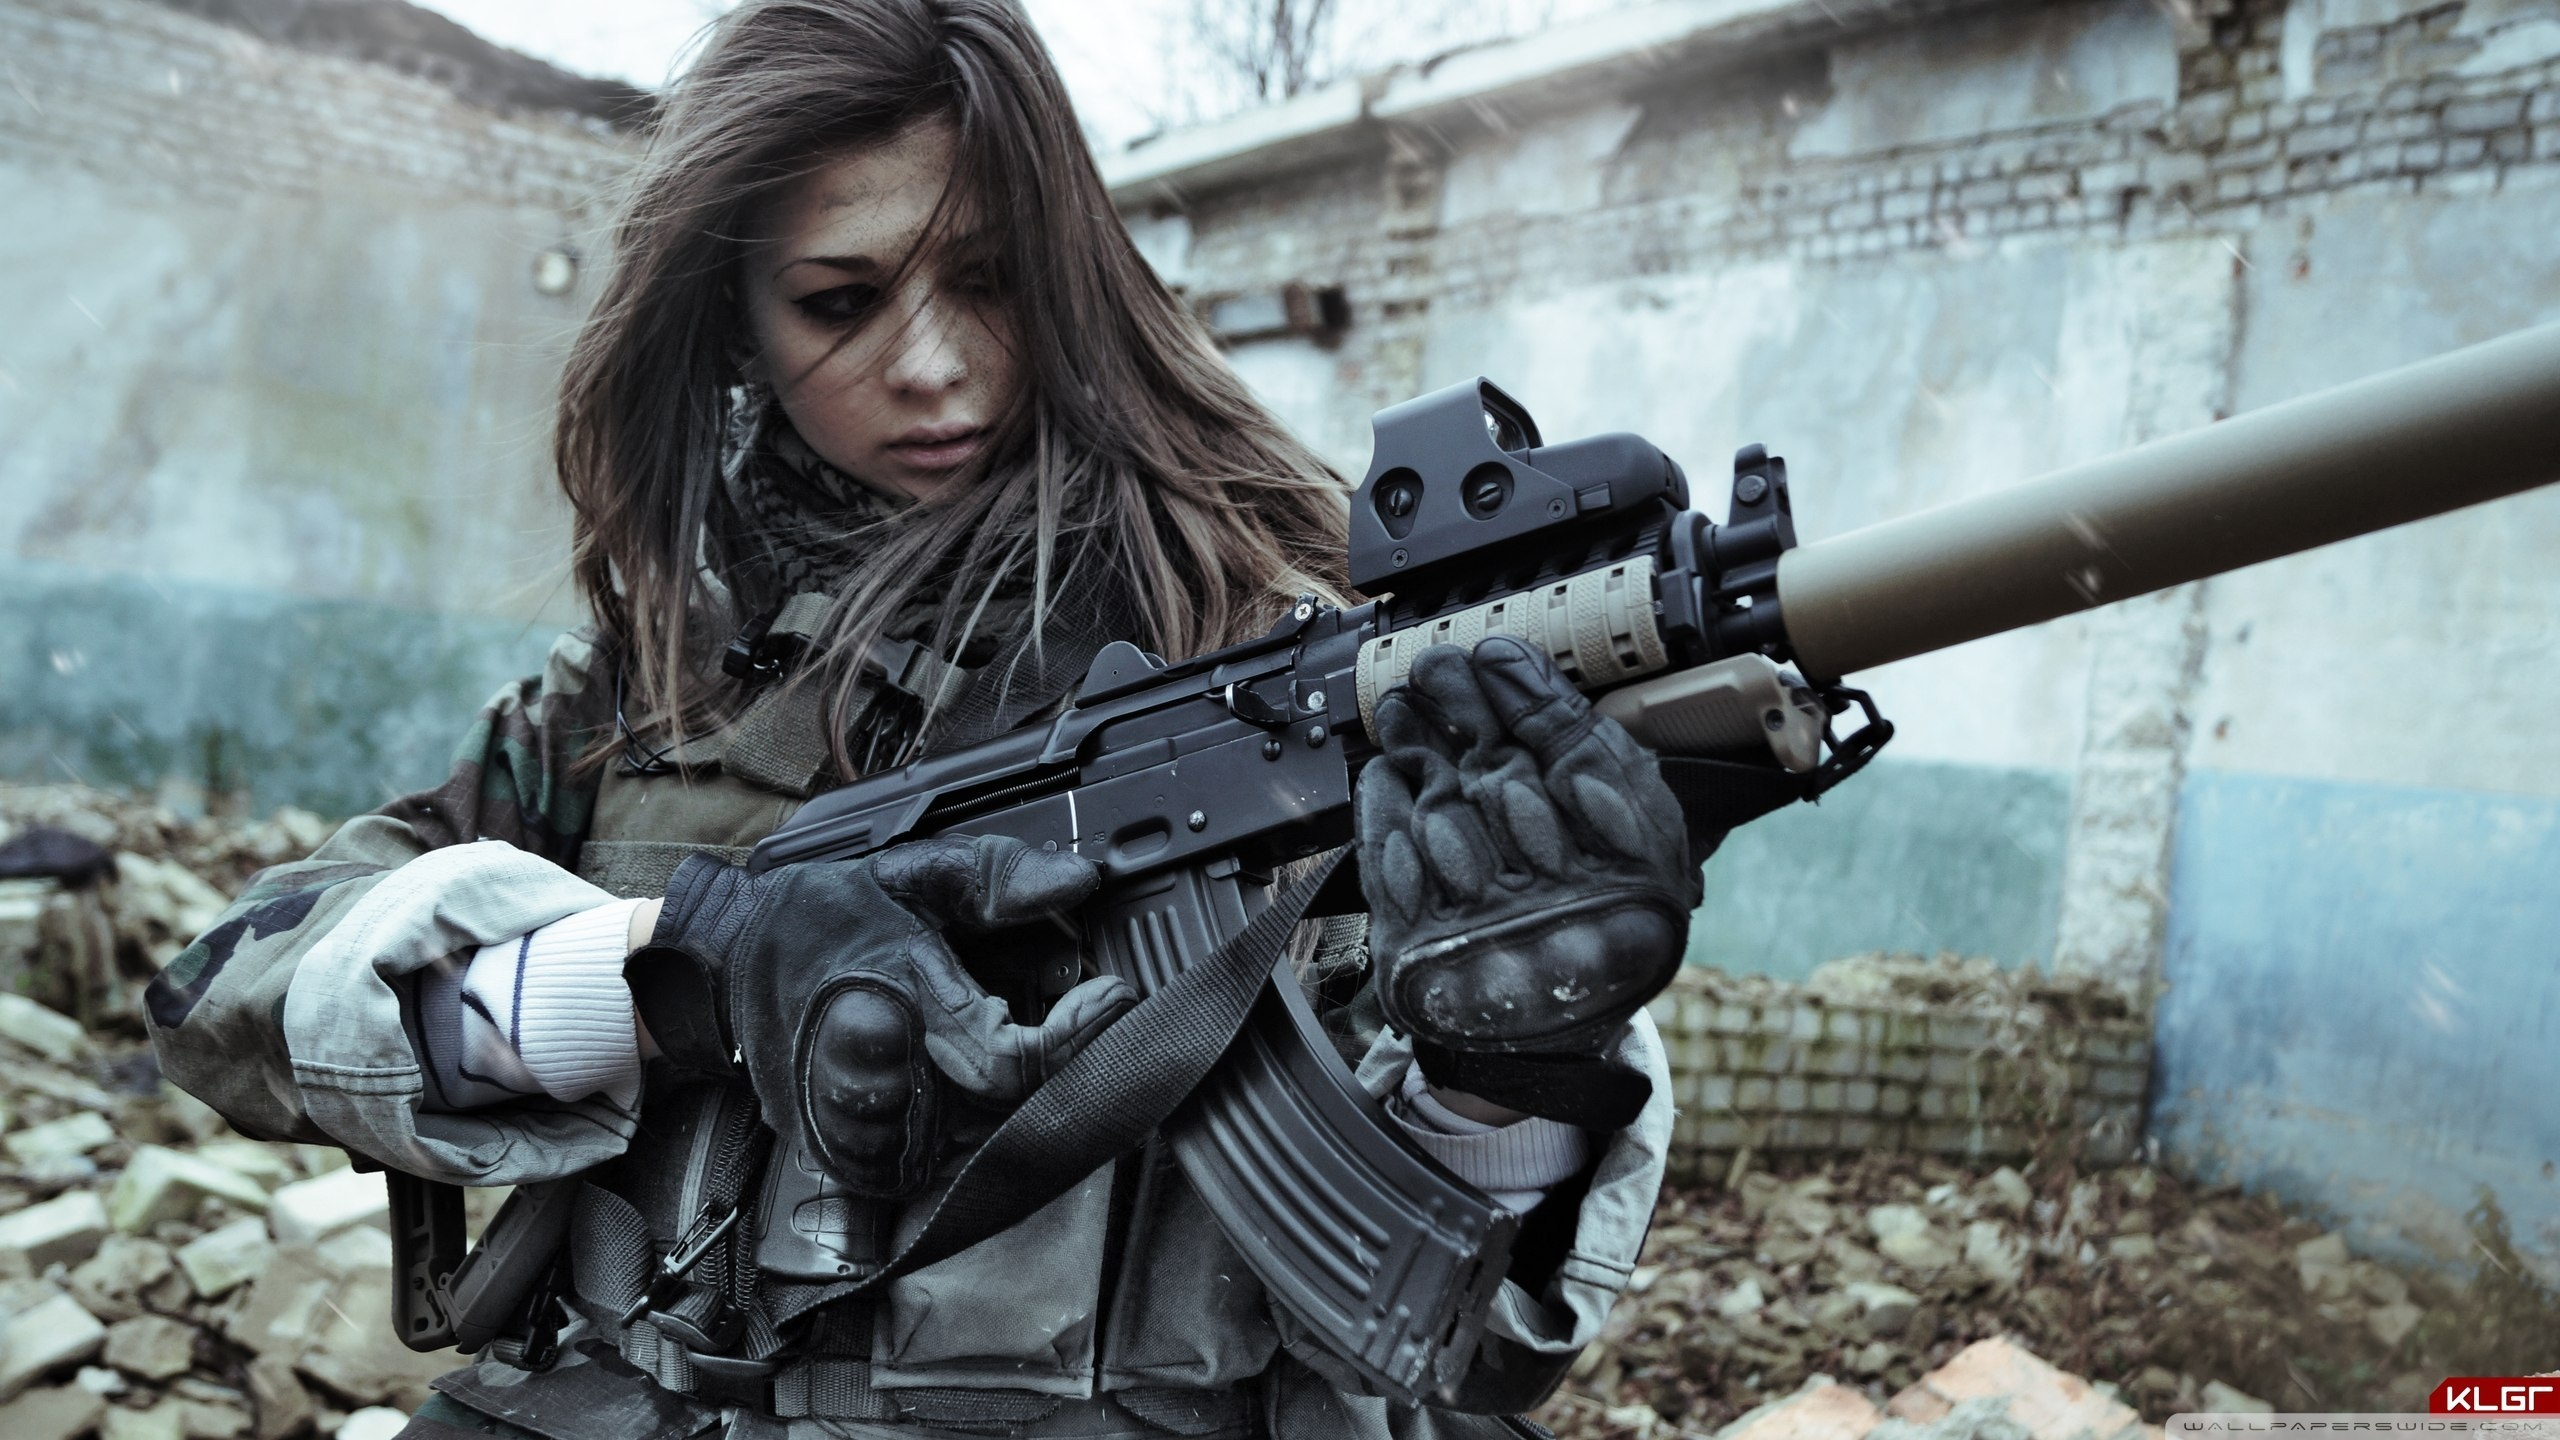 women army sniper wallpaper - photo #19